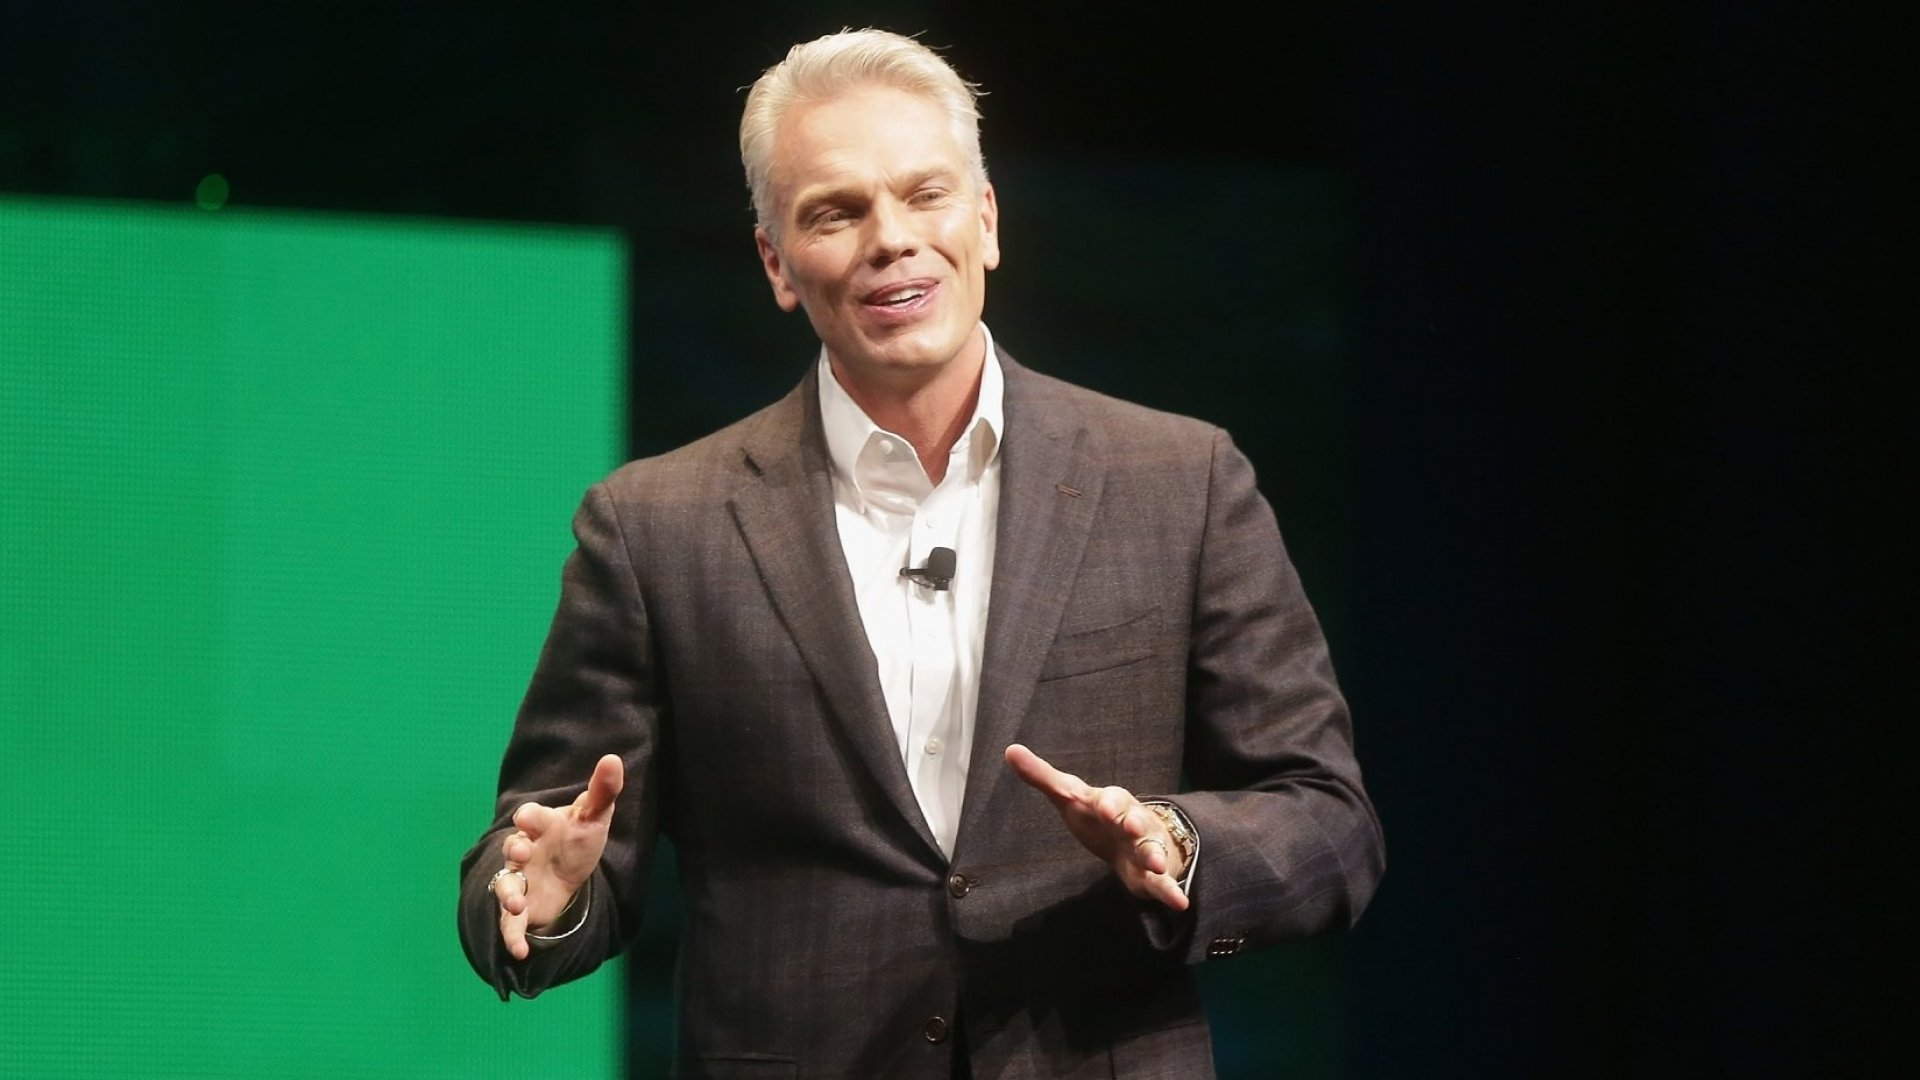 This Perceived Weakness Is One of the Best Ways to Build an All-Star Team, Says Intuit CEO